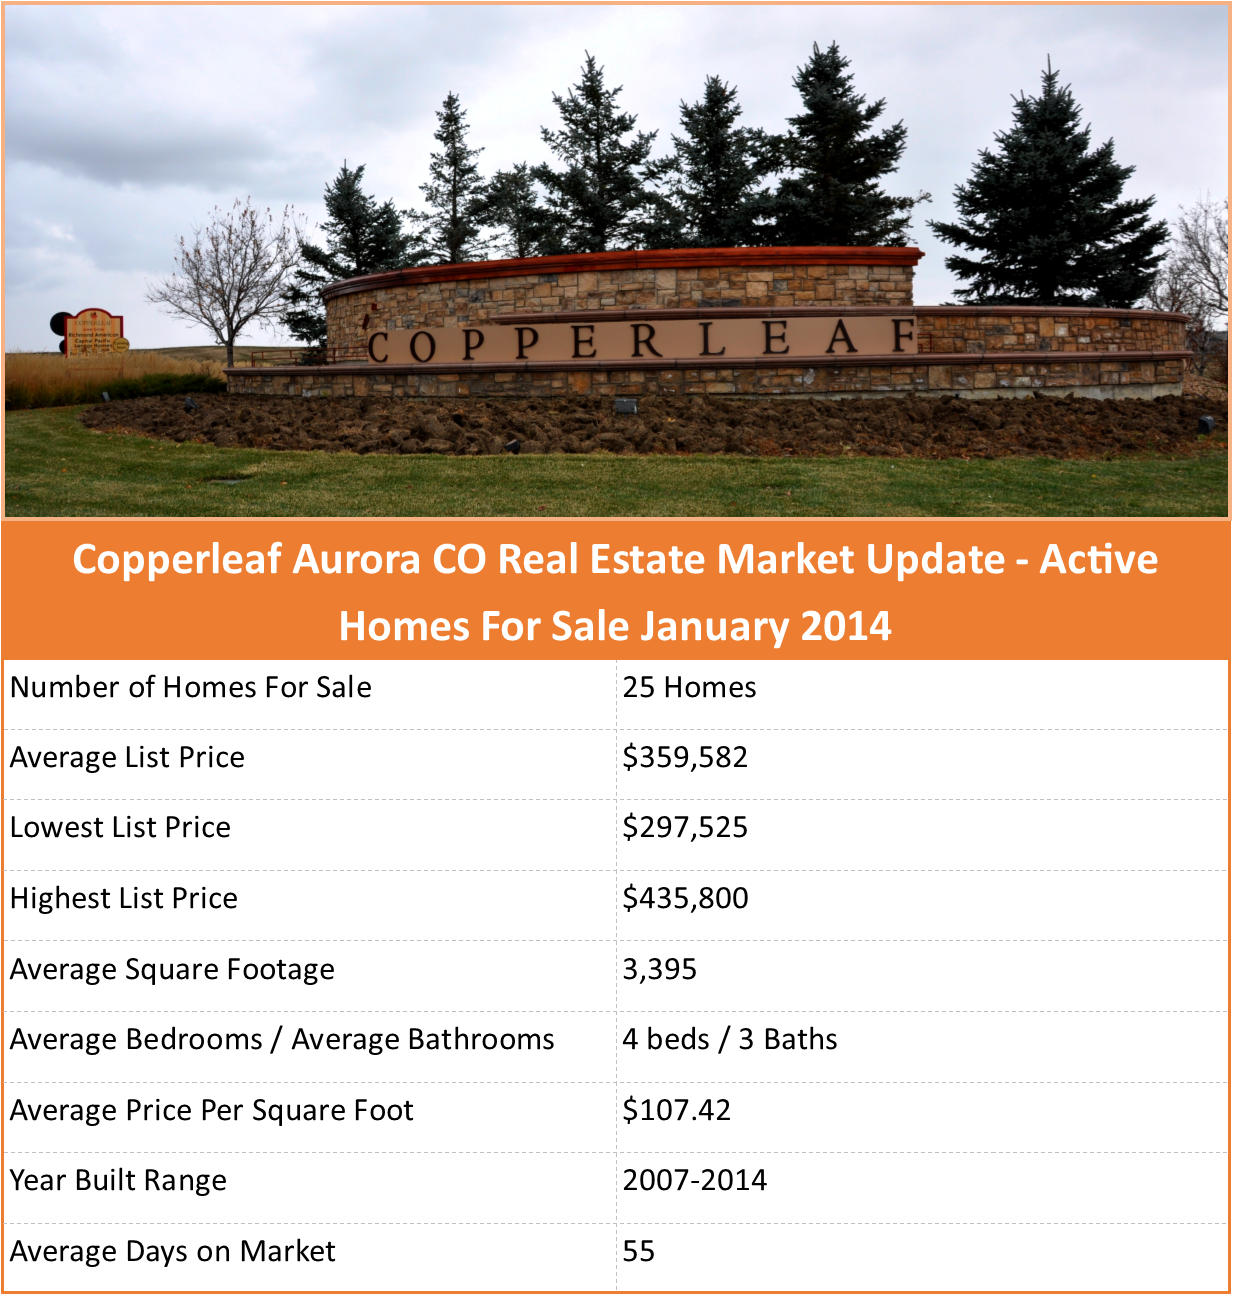 copperleaf aurora co market update homes for sale as of